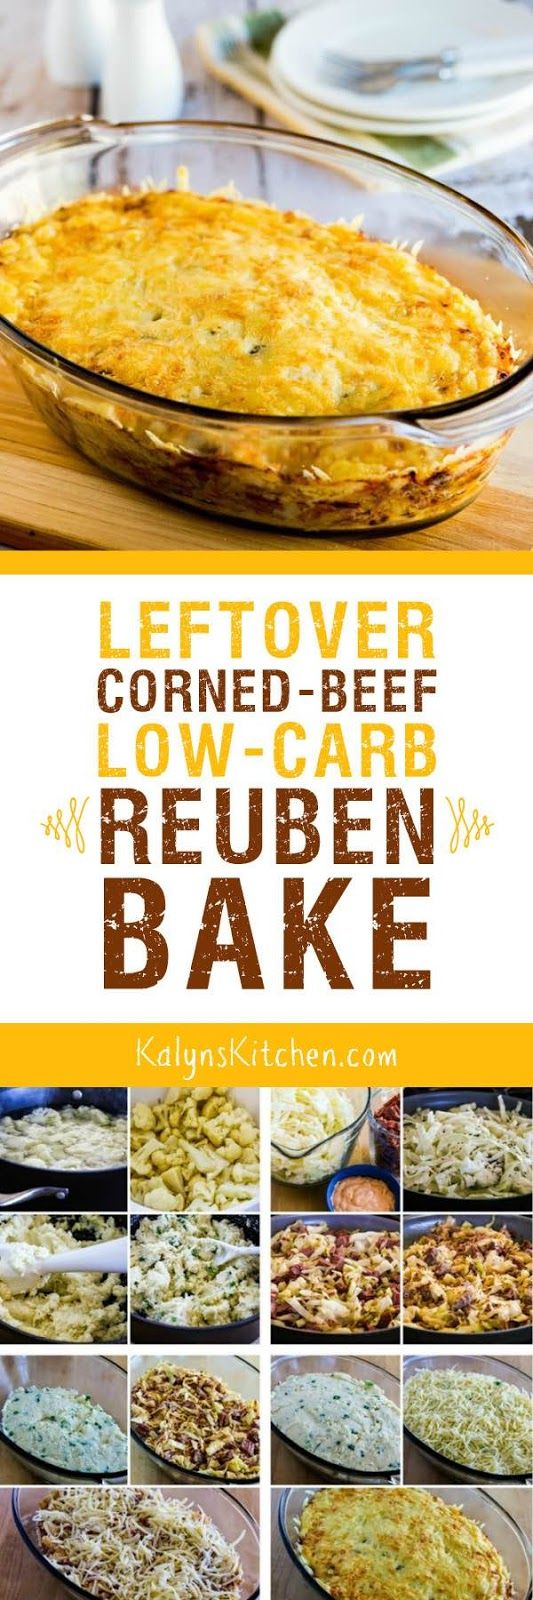 Leftover Corned Beef Low-Carb Reuben Bake is a great idea for leftover corned beef after St. Patrick's Day, or buy some corned beef from the deli and make this any time of year! [found on KalynsKitchen.com]